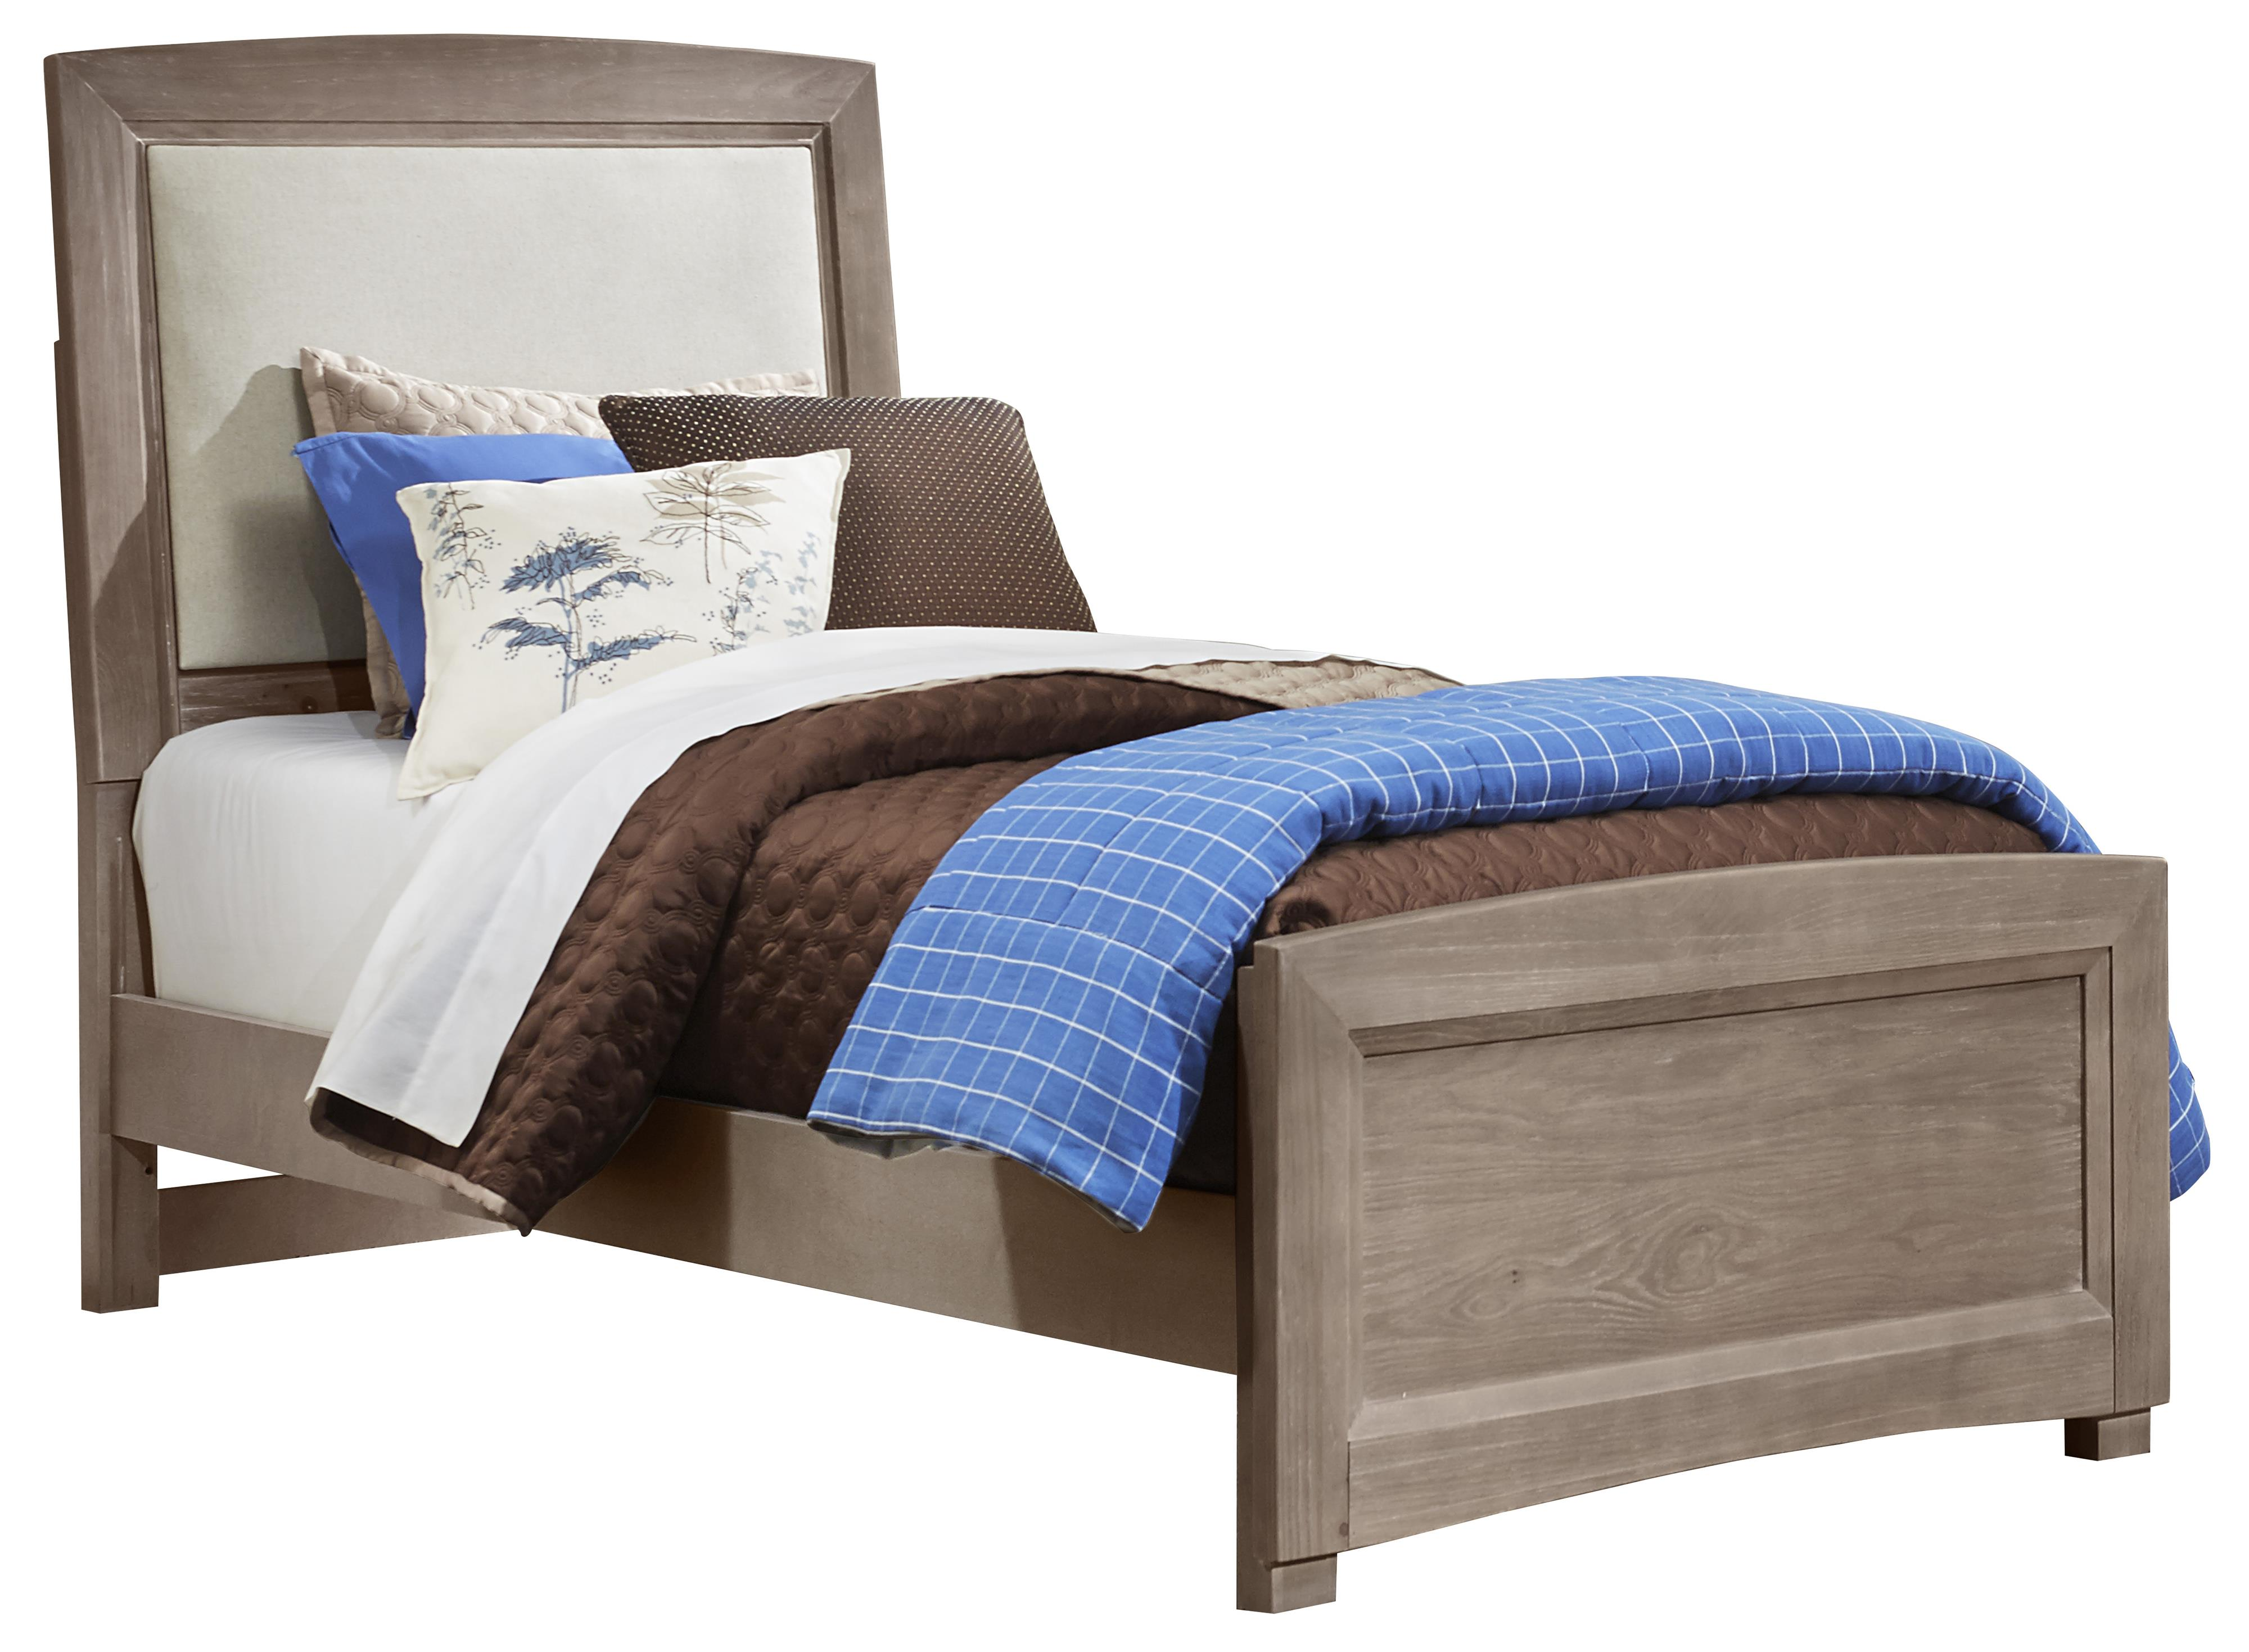 Vaughan Bassett Transitions Twin Upholstered Bed, Base Cloth Linen - Item Number: BB61-339+833+900